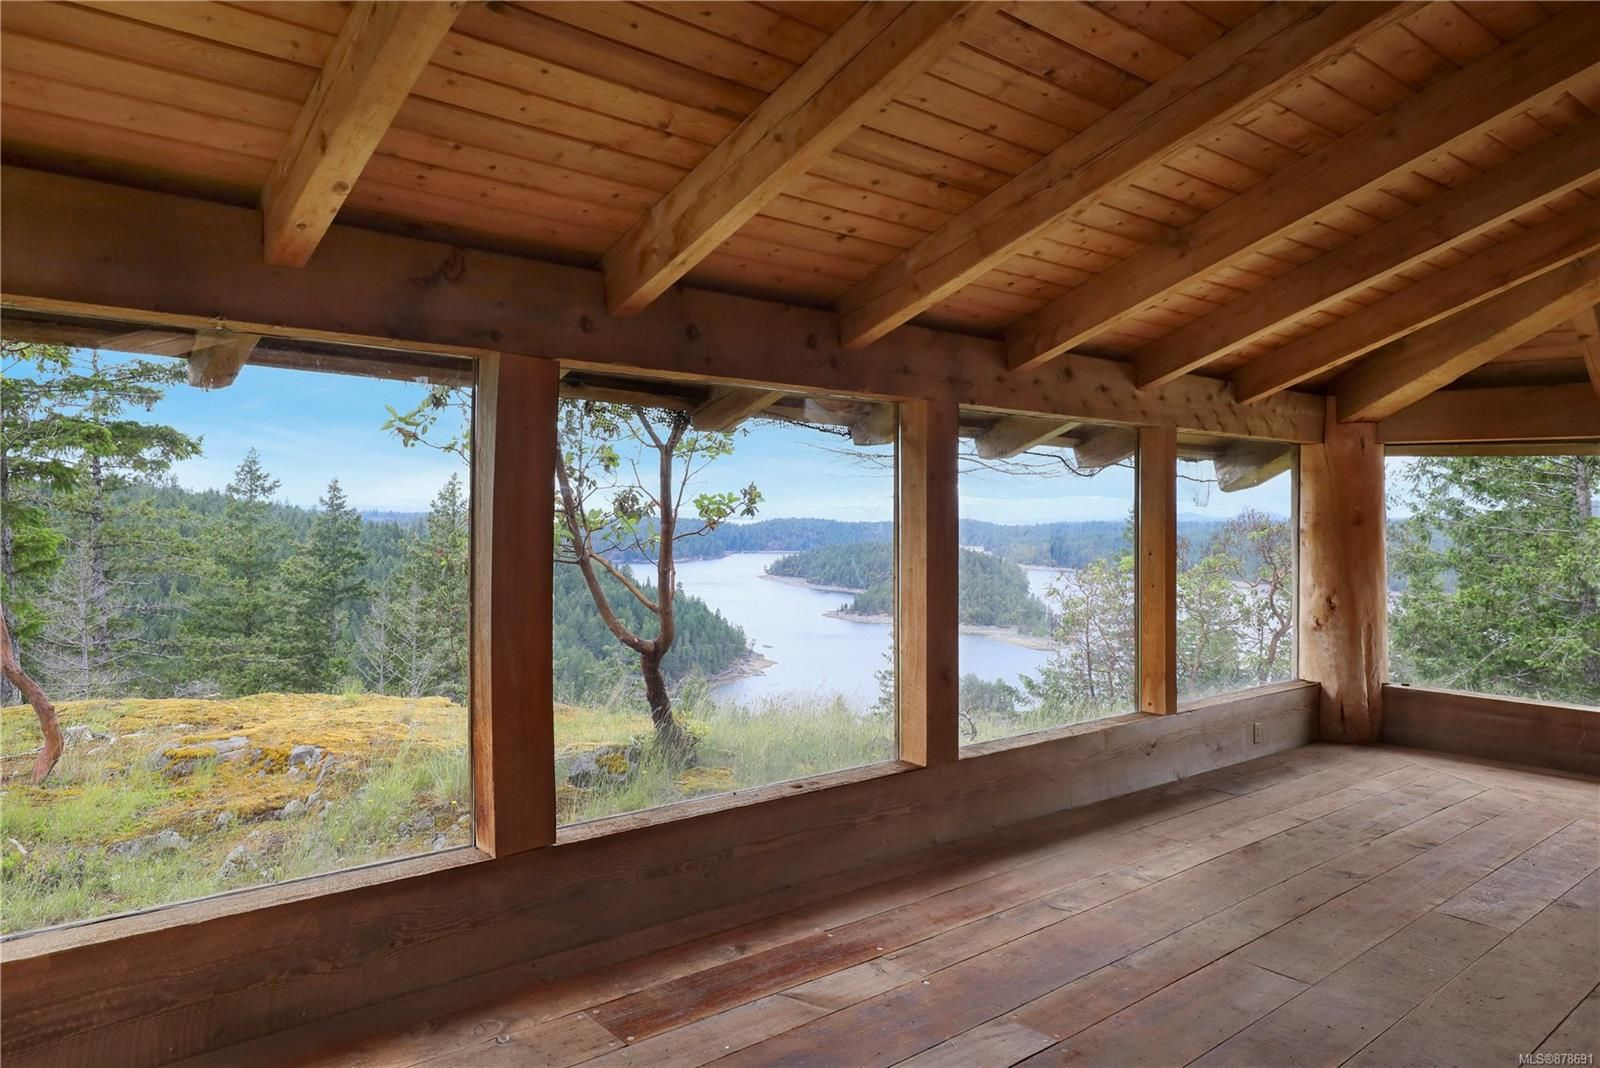 Photo 23: Photos: 979 Thunder Rd in : Isl Cortes Island House for sale (Islands)  : MLS®# 878691